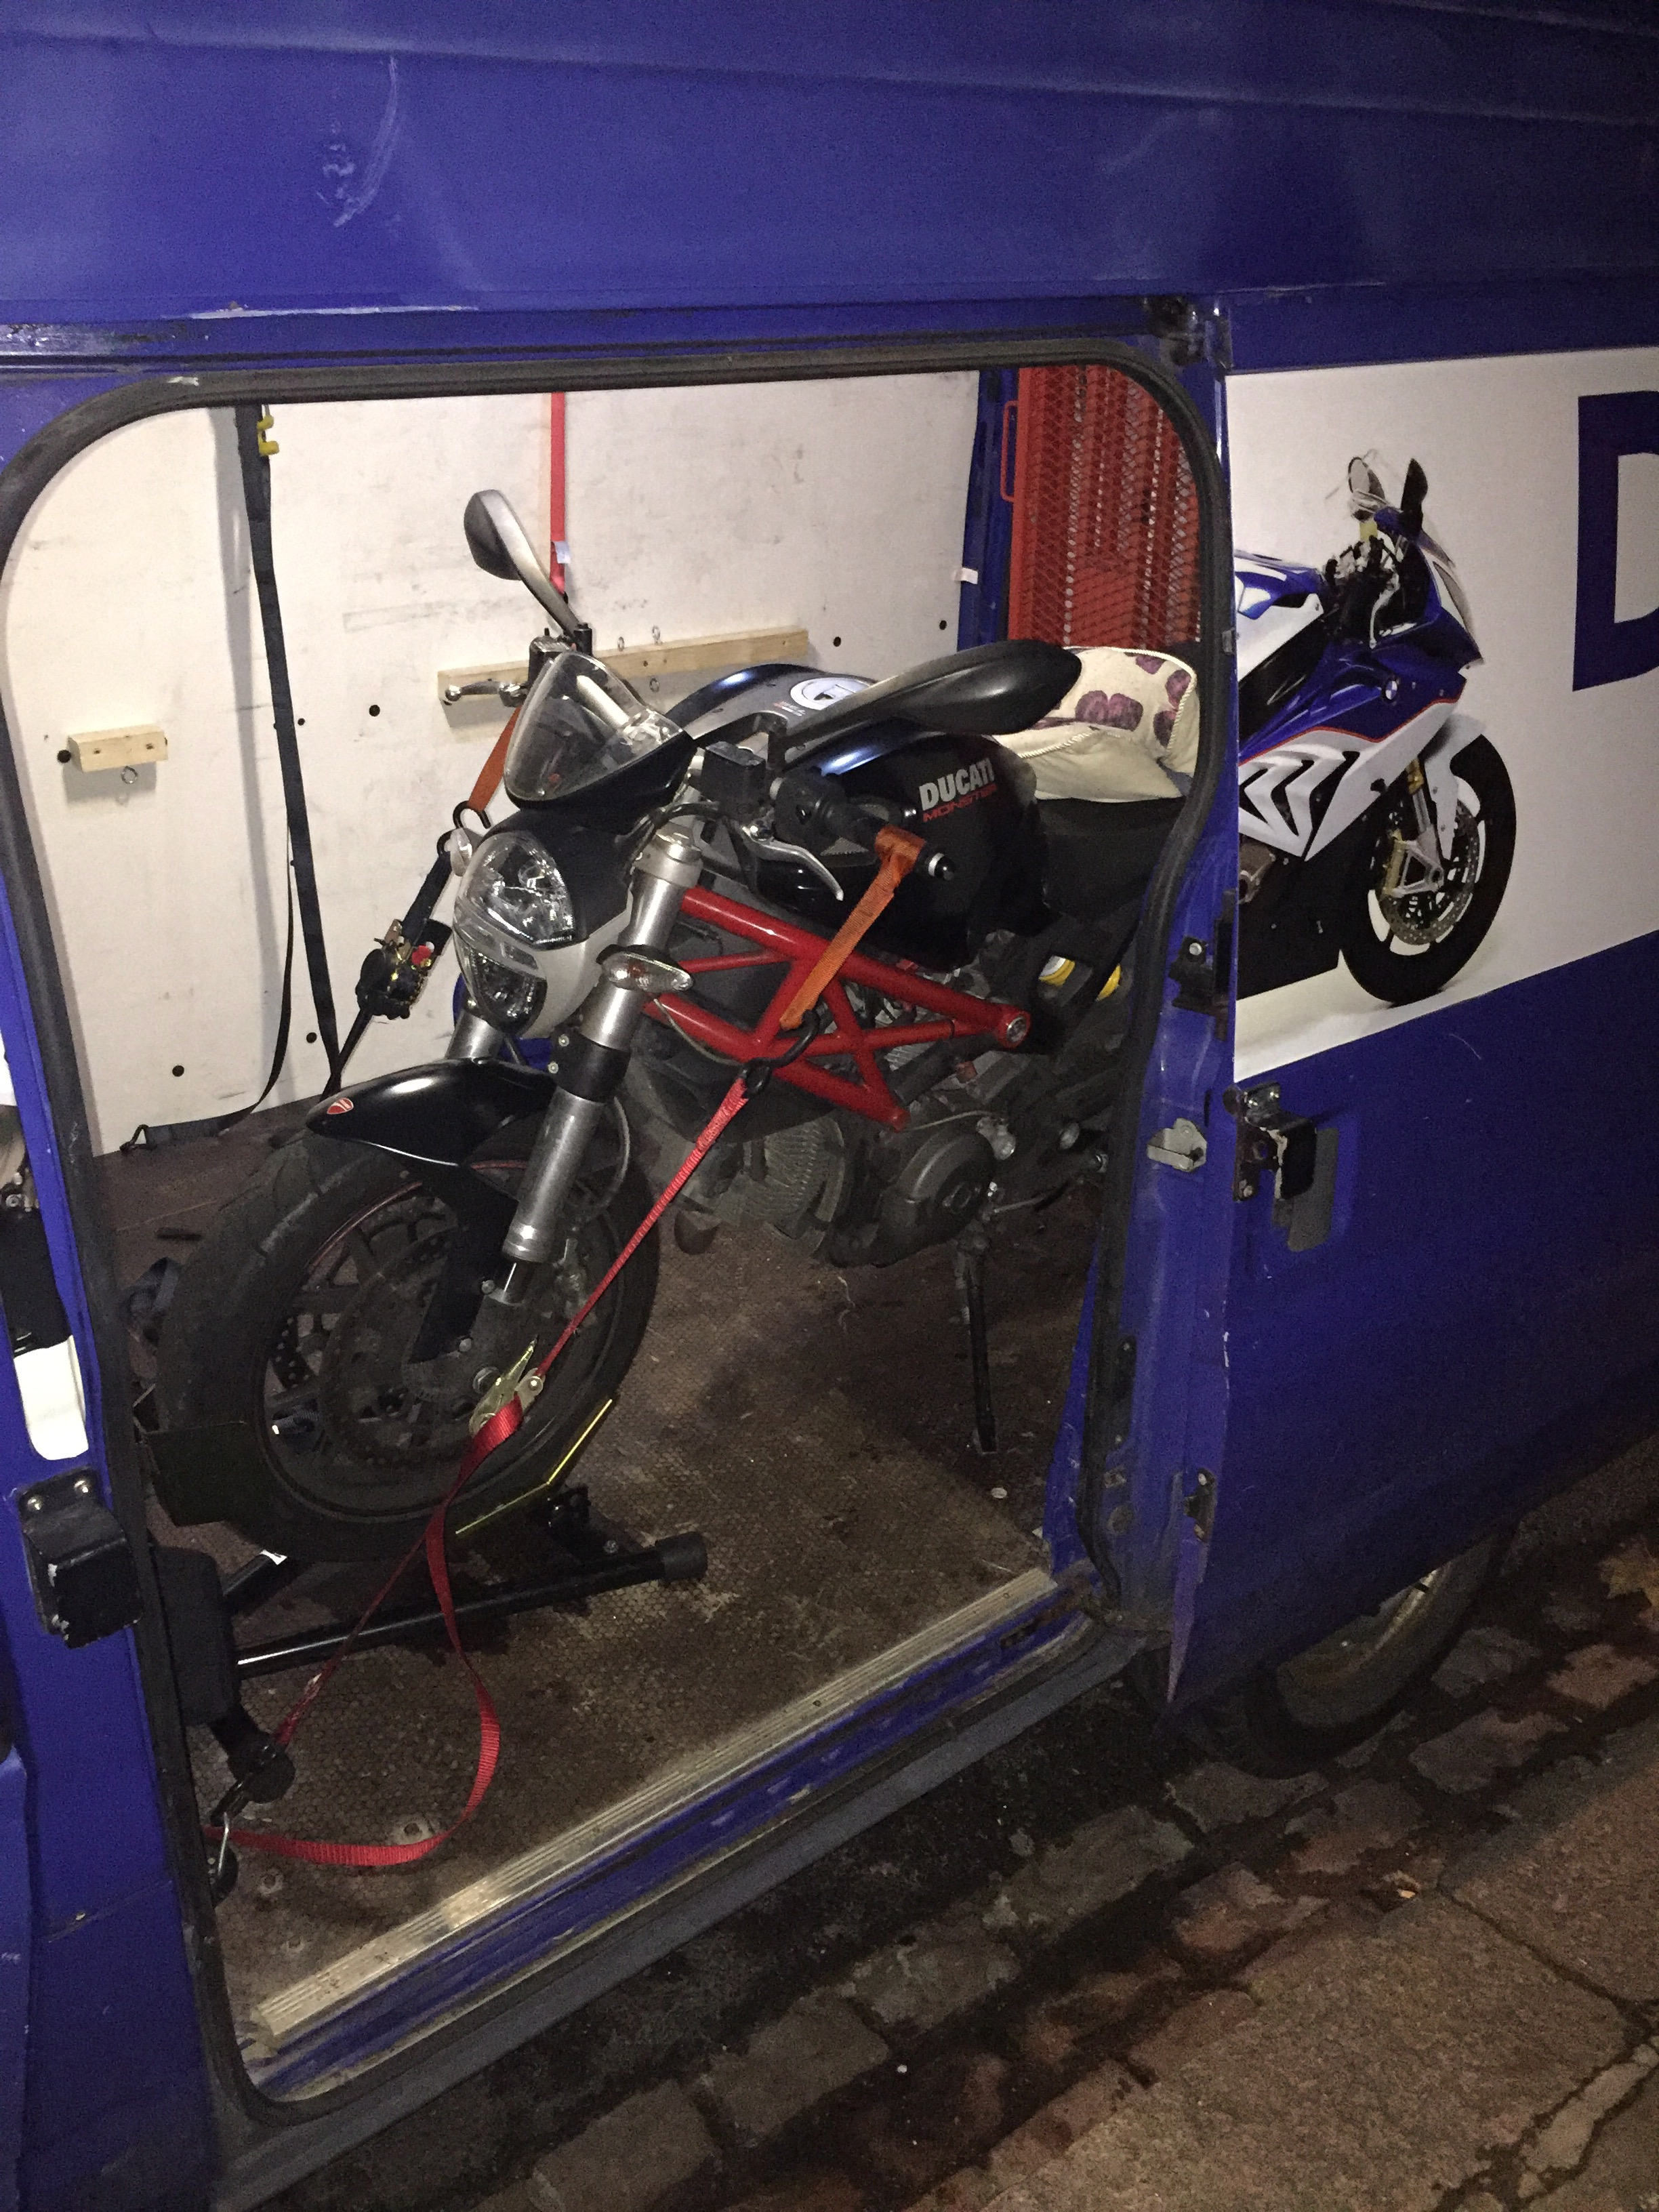 DMR motorcycle recovery